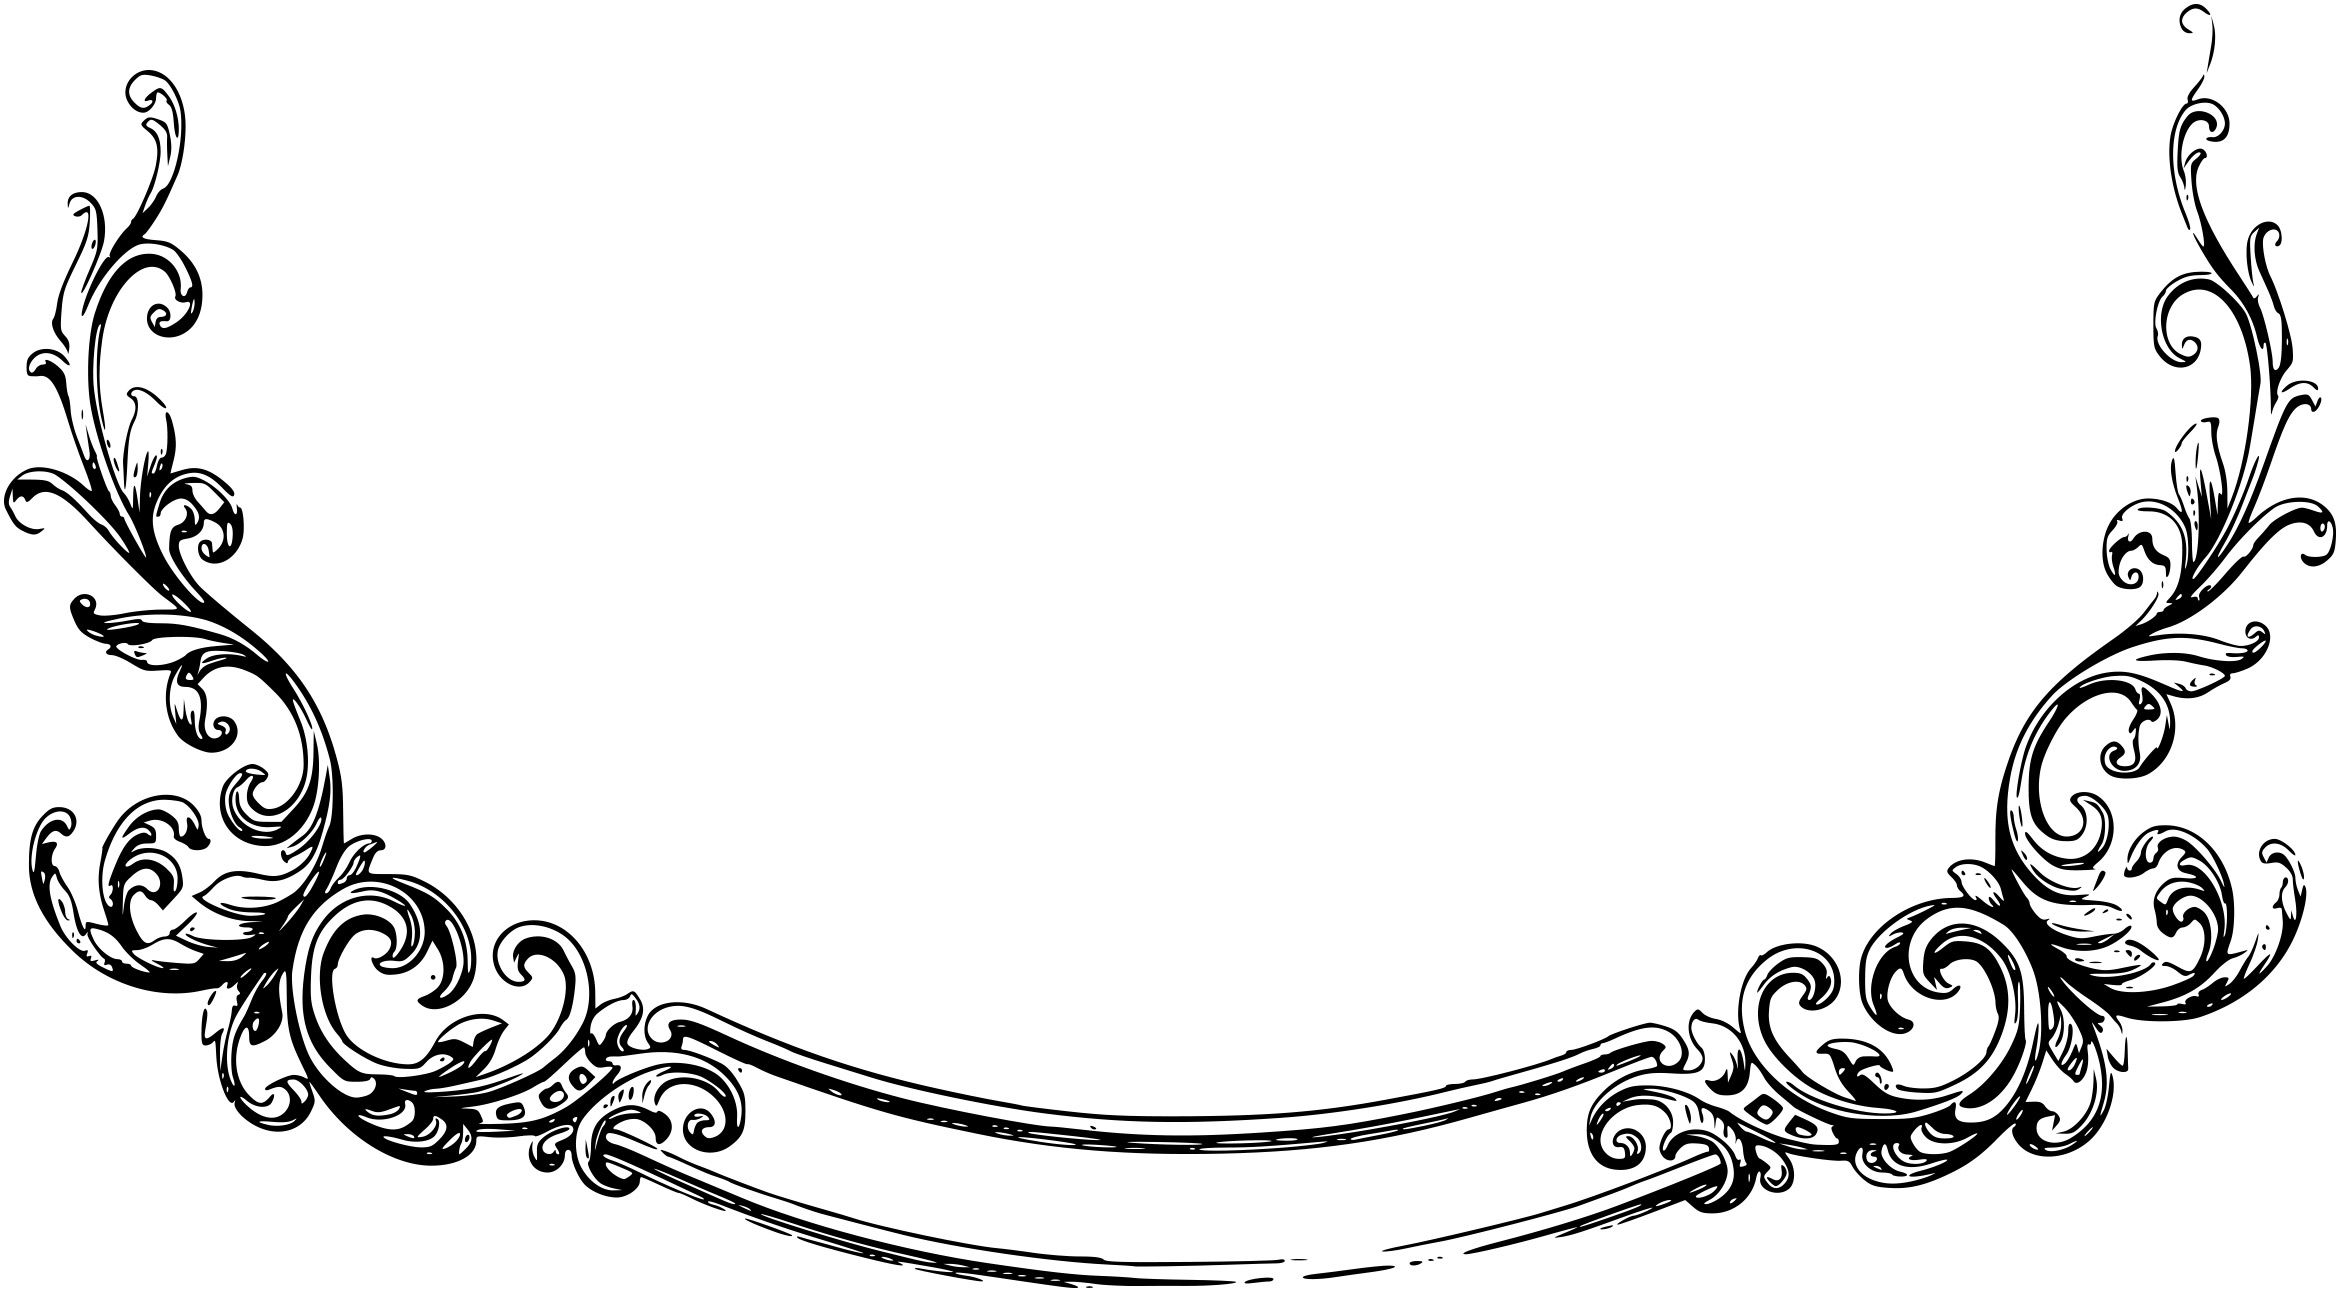 hight resolution of free scrolls clipart 4